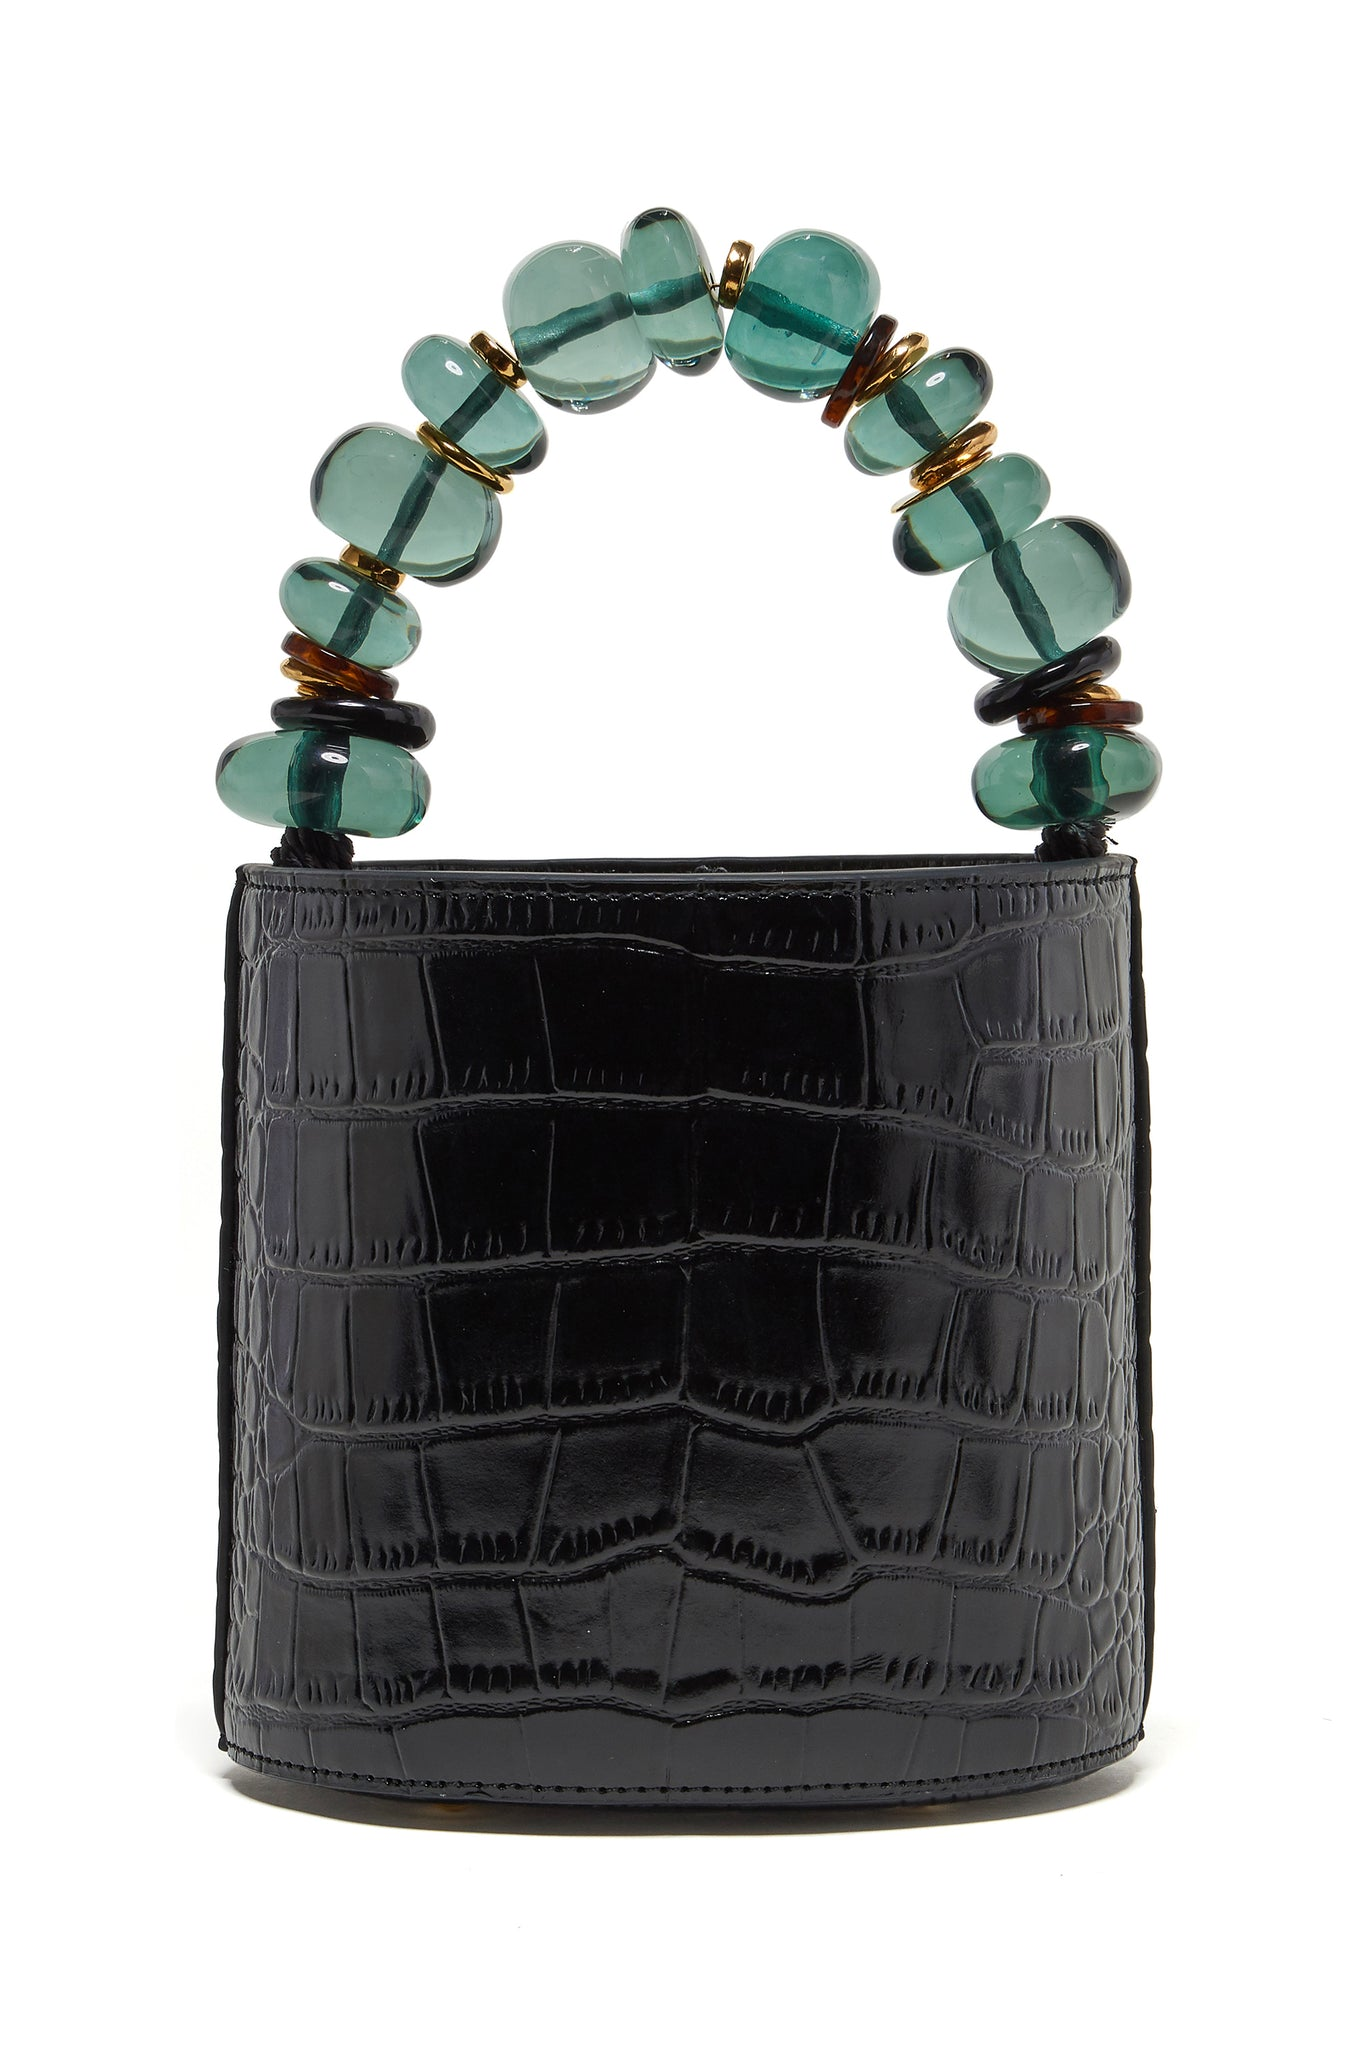 Lizzie Fortunato - florent bag, black crocodile